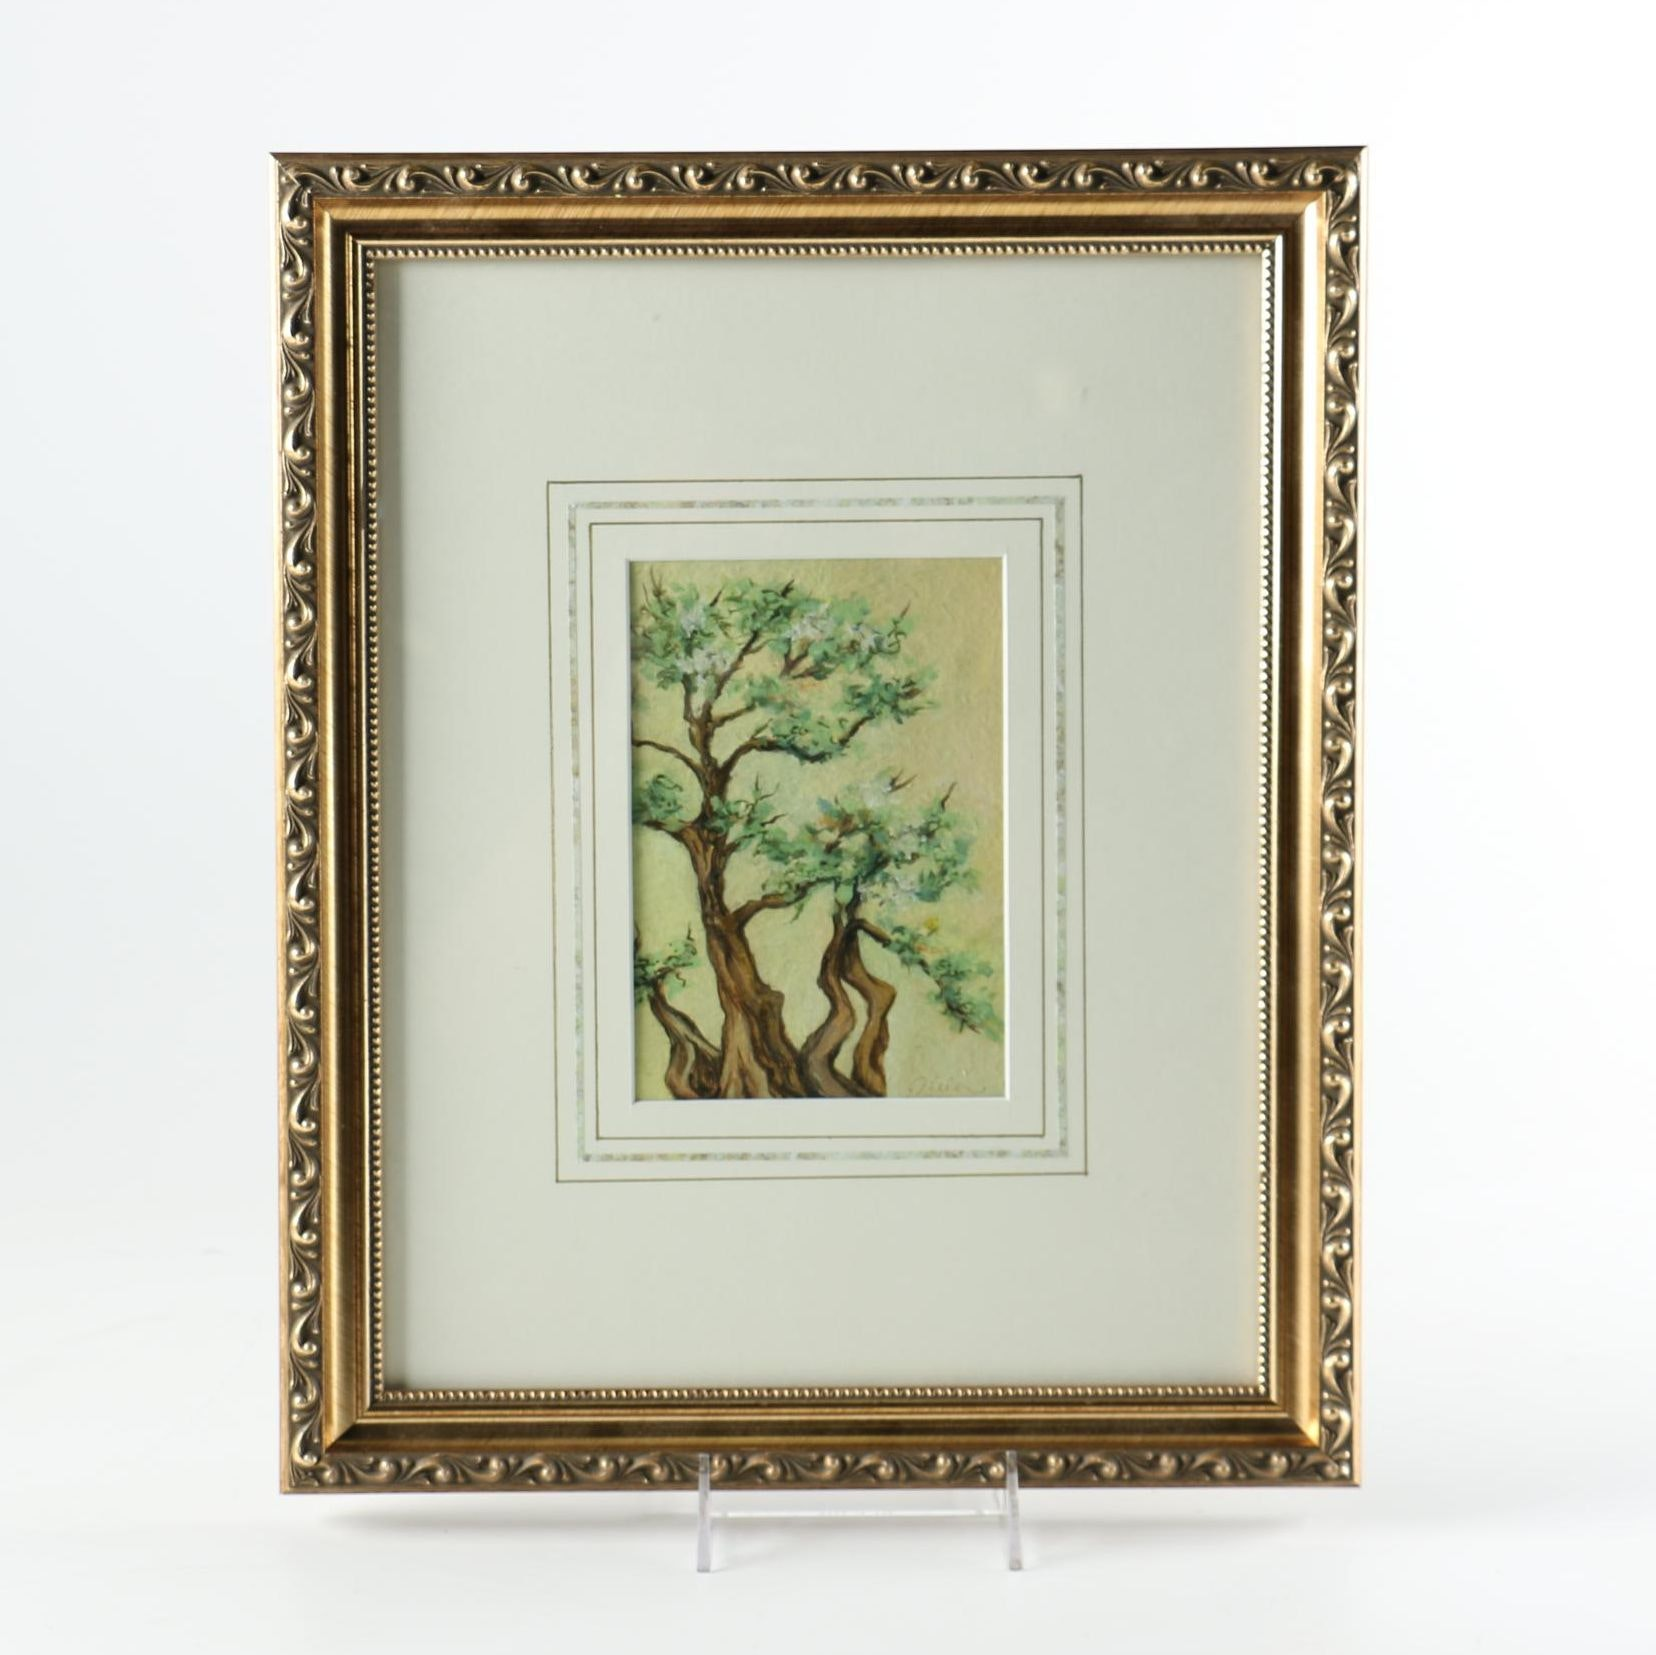 Framed Original Oil Painting of Tree Branches